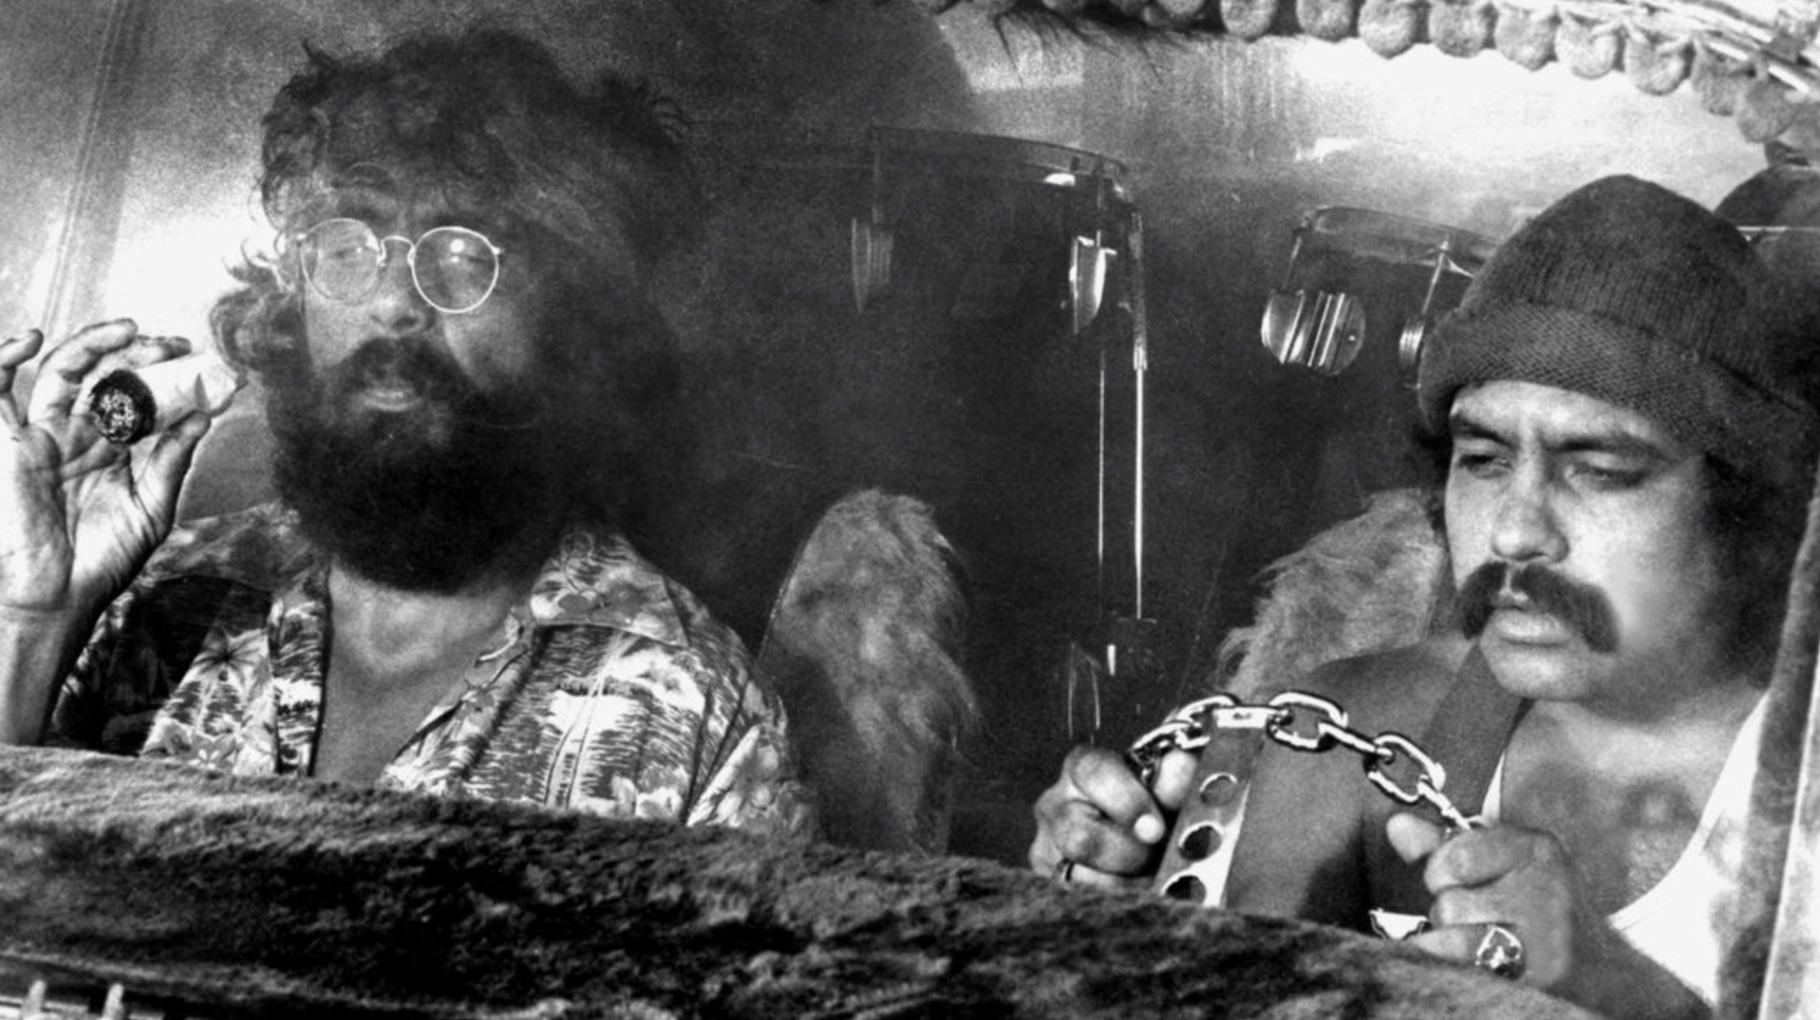 Cheech and Chong bestcoffeeshopamsterdambestfriends